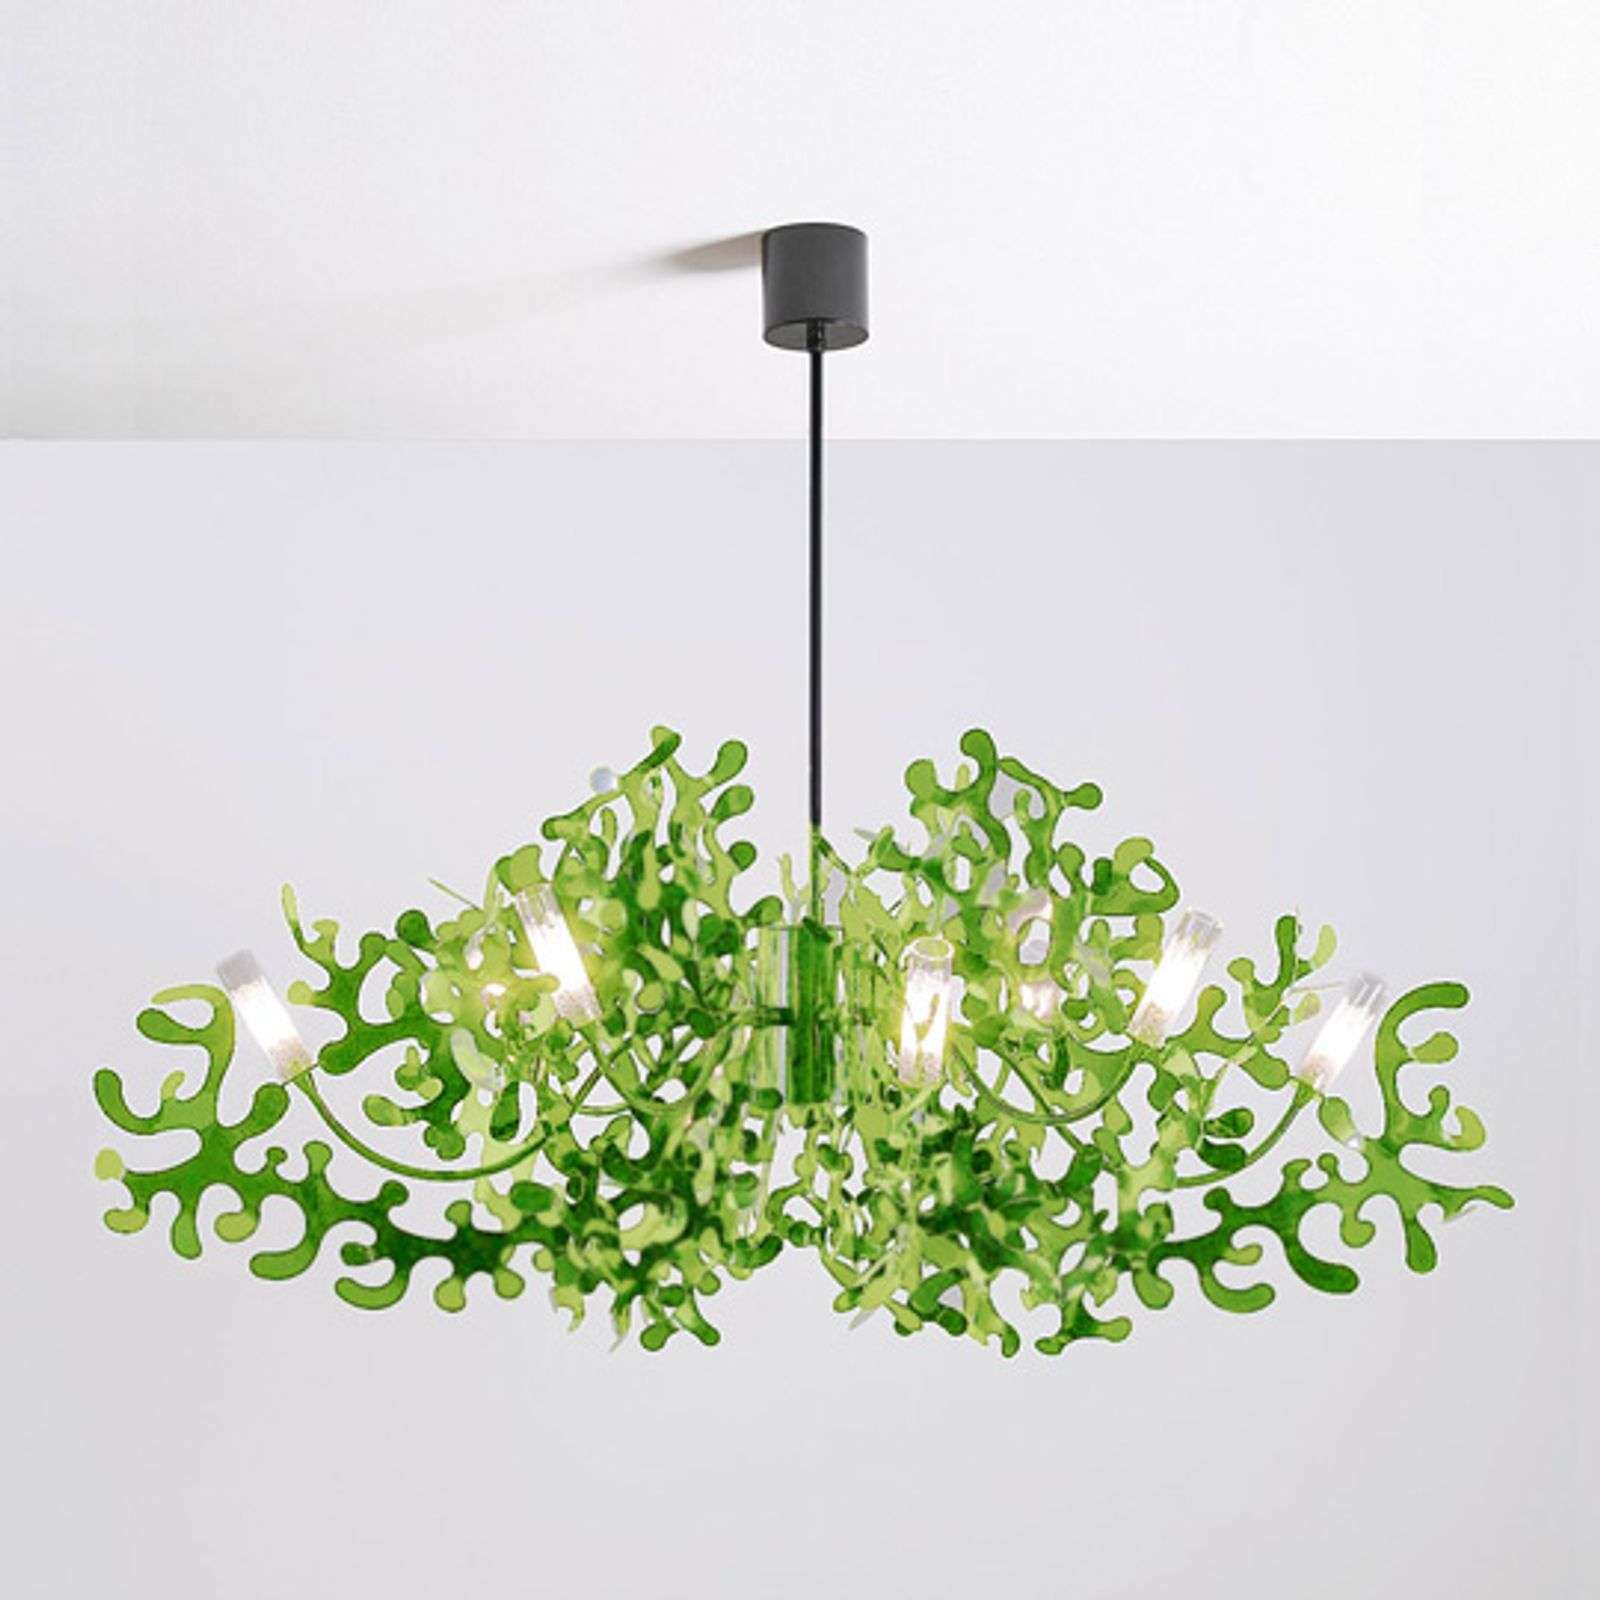 Suspension CORAL verte